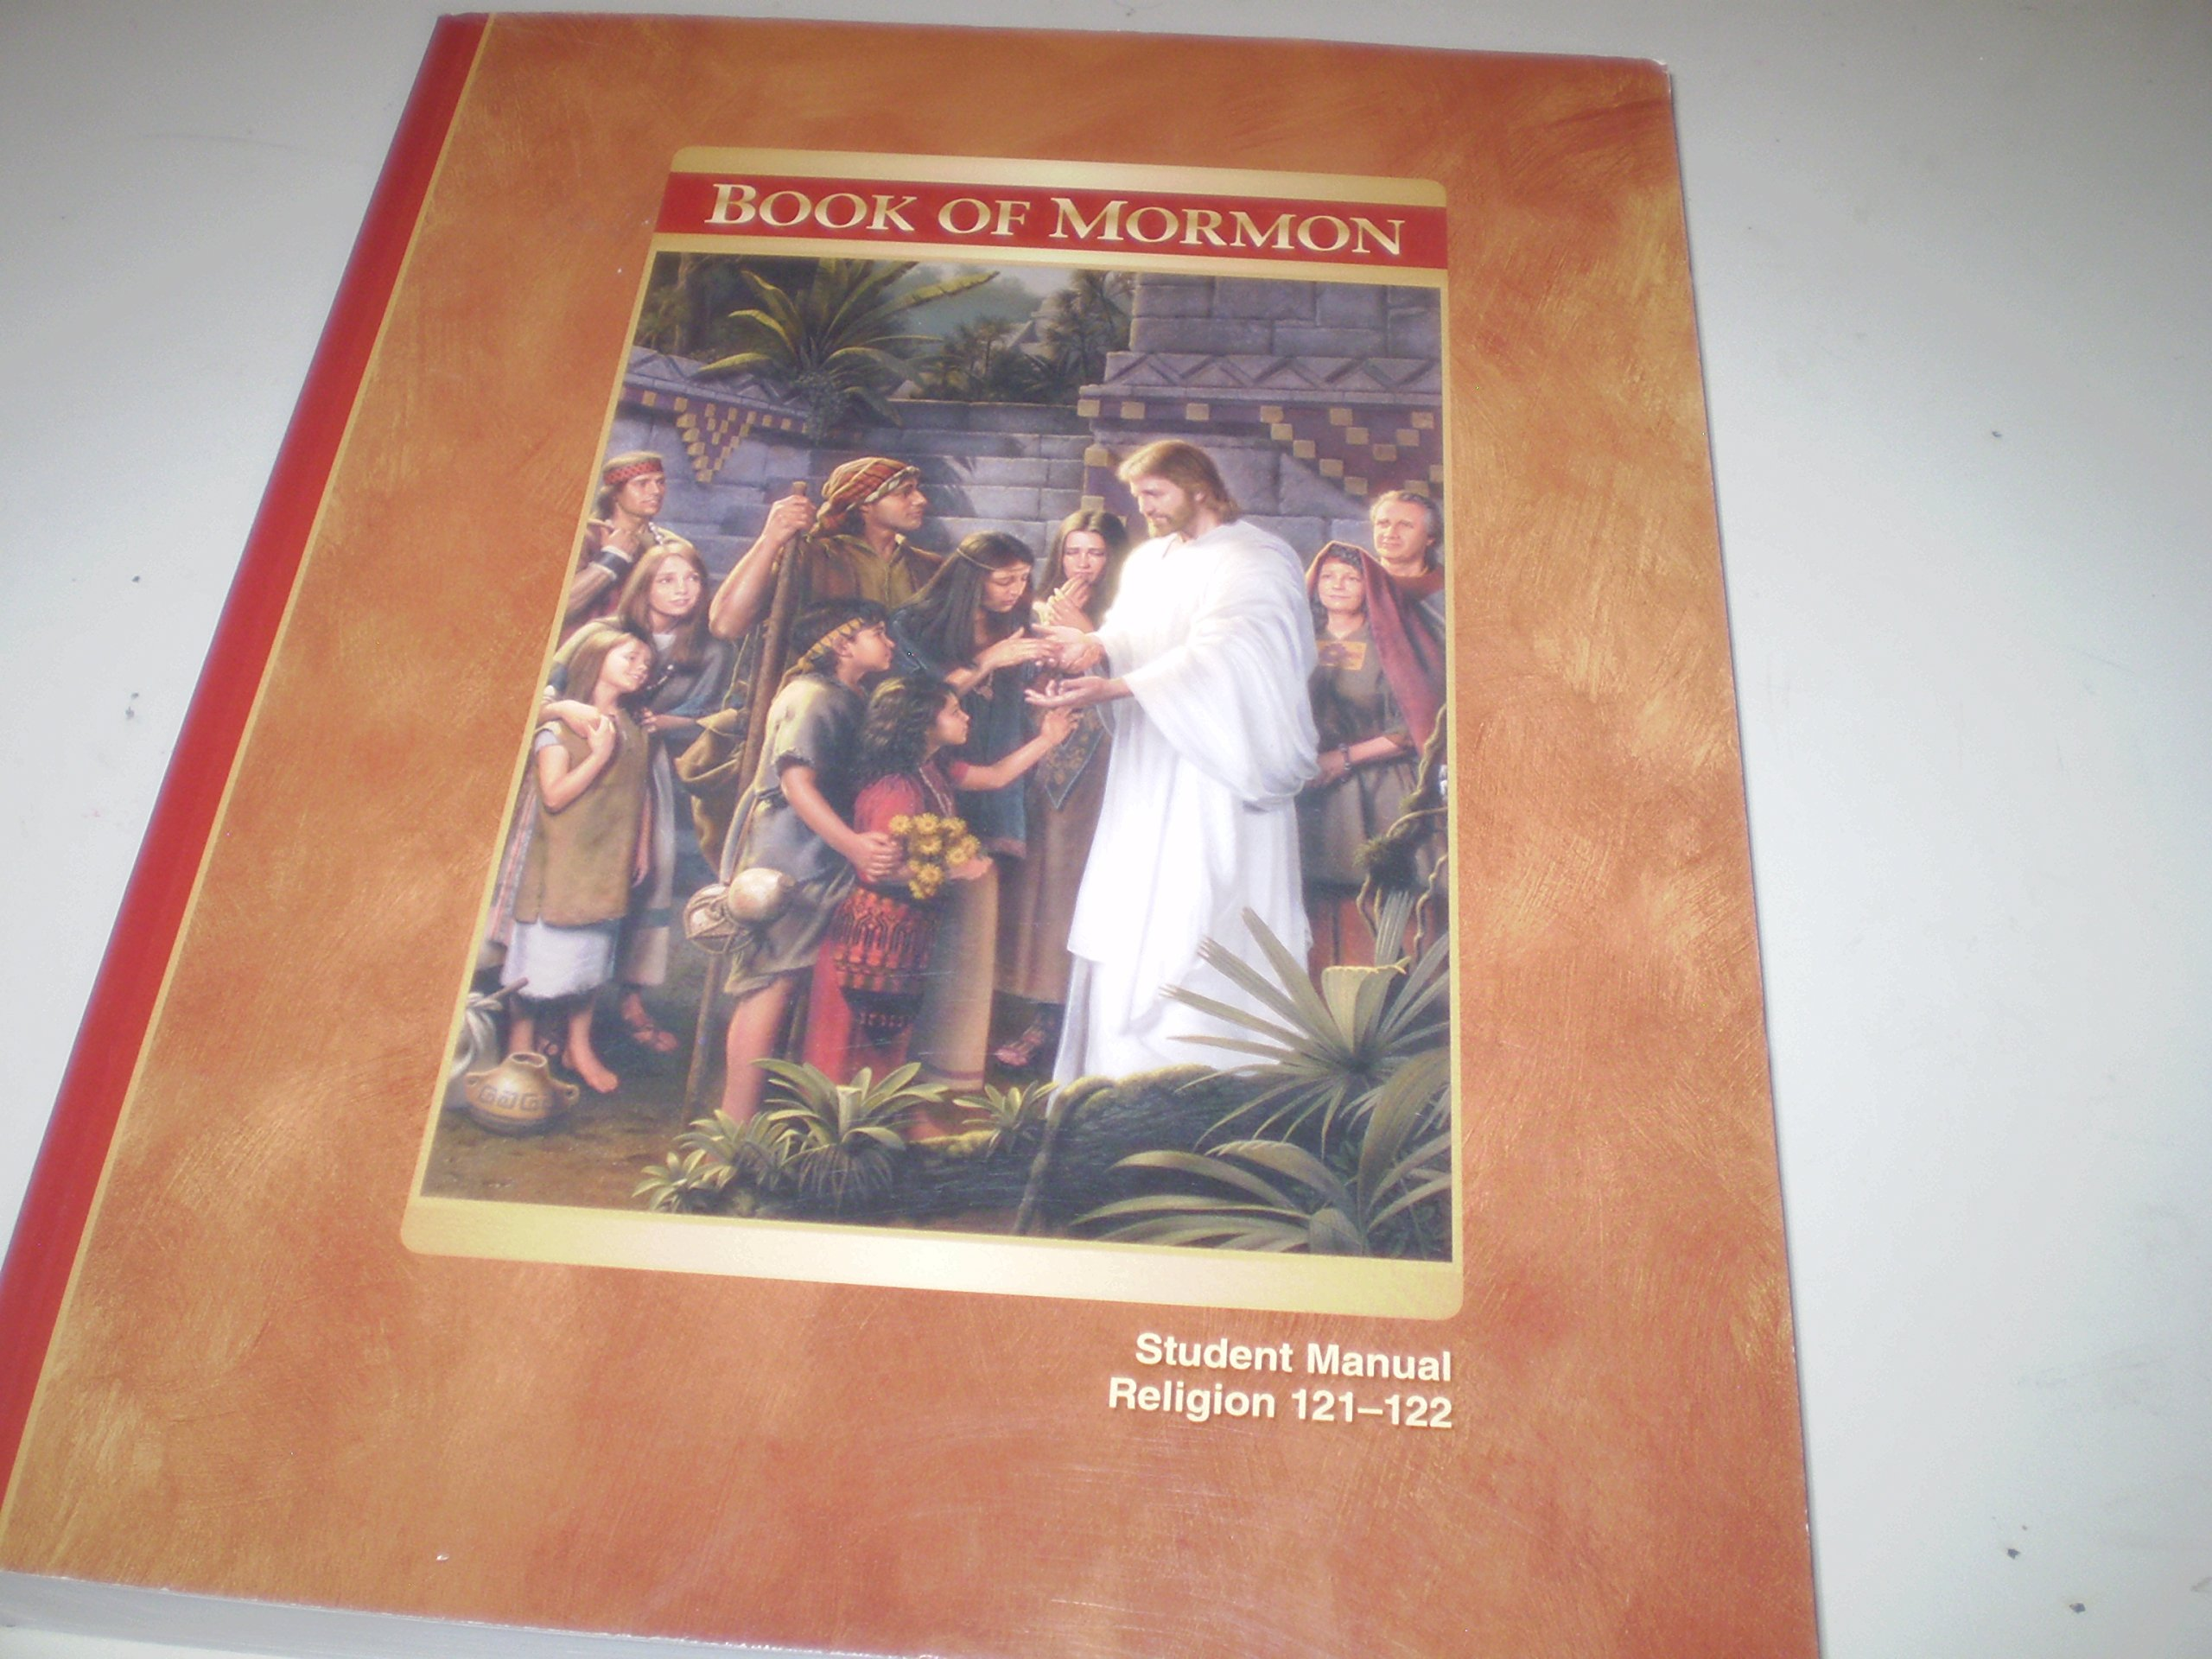 Book of Mormon - Student Manual, Religion 121-122: Church of Jesus Christ  of Latter-day Saints: Amazon.com: Books